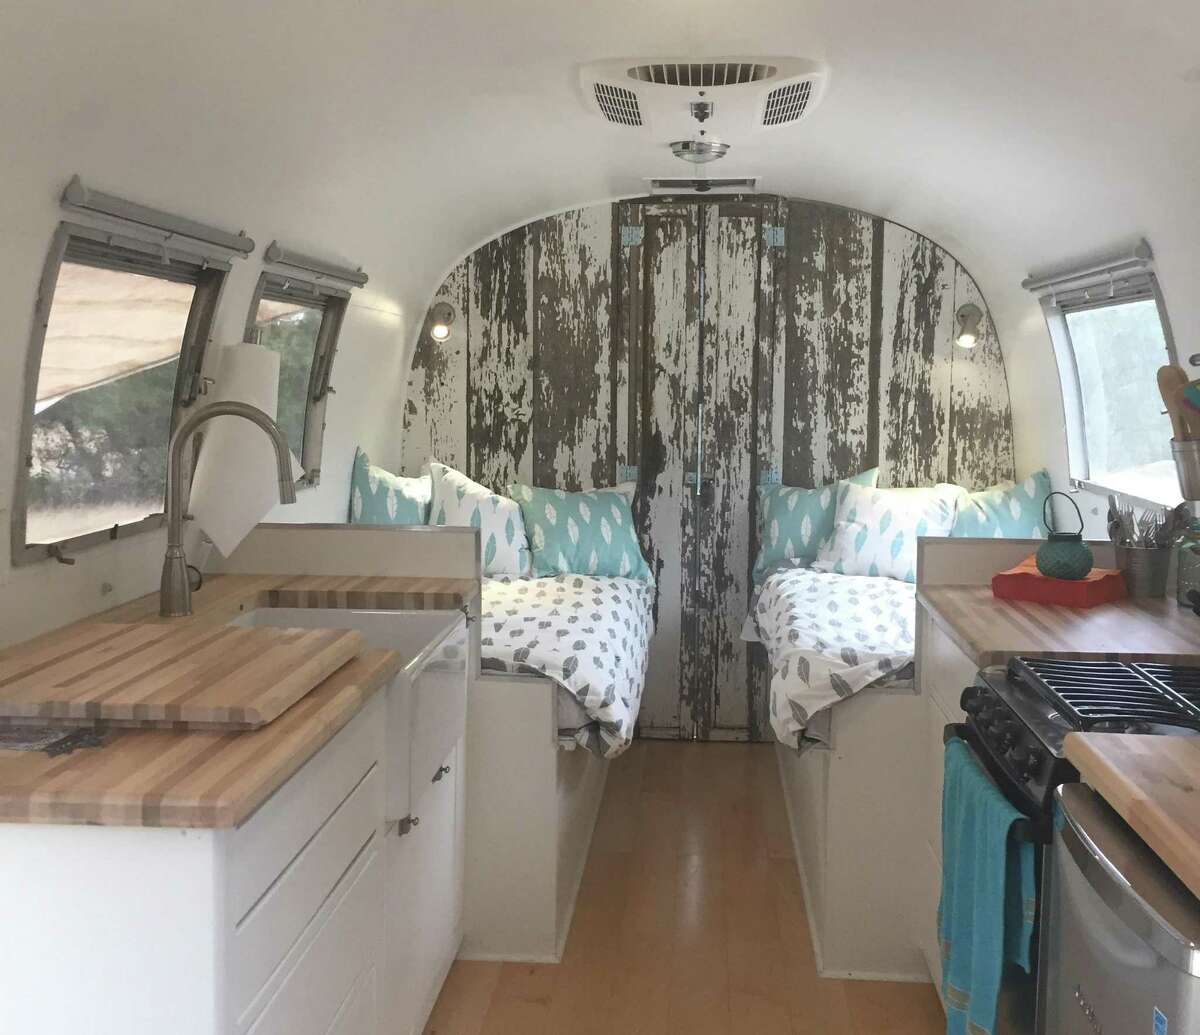 Mary Pat Mueller's restored 1966 Airstream trailer includes new twin beds and a farm sink, plus a new bathroom behind the pictured wall made from reclaimed farm wood.